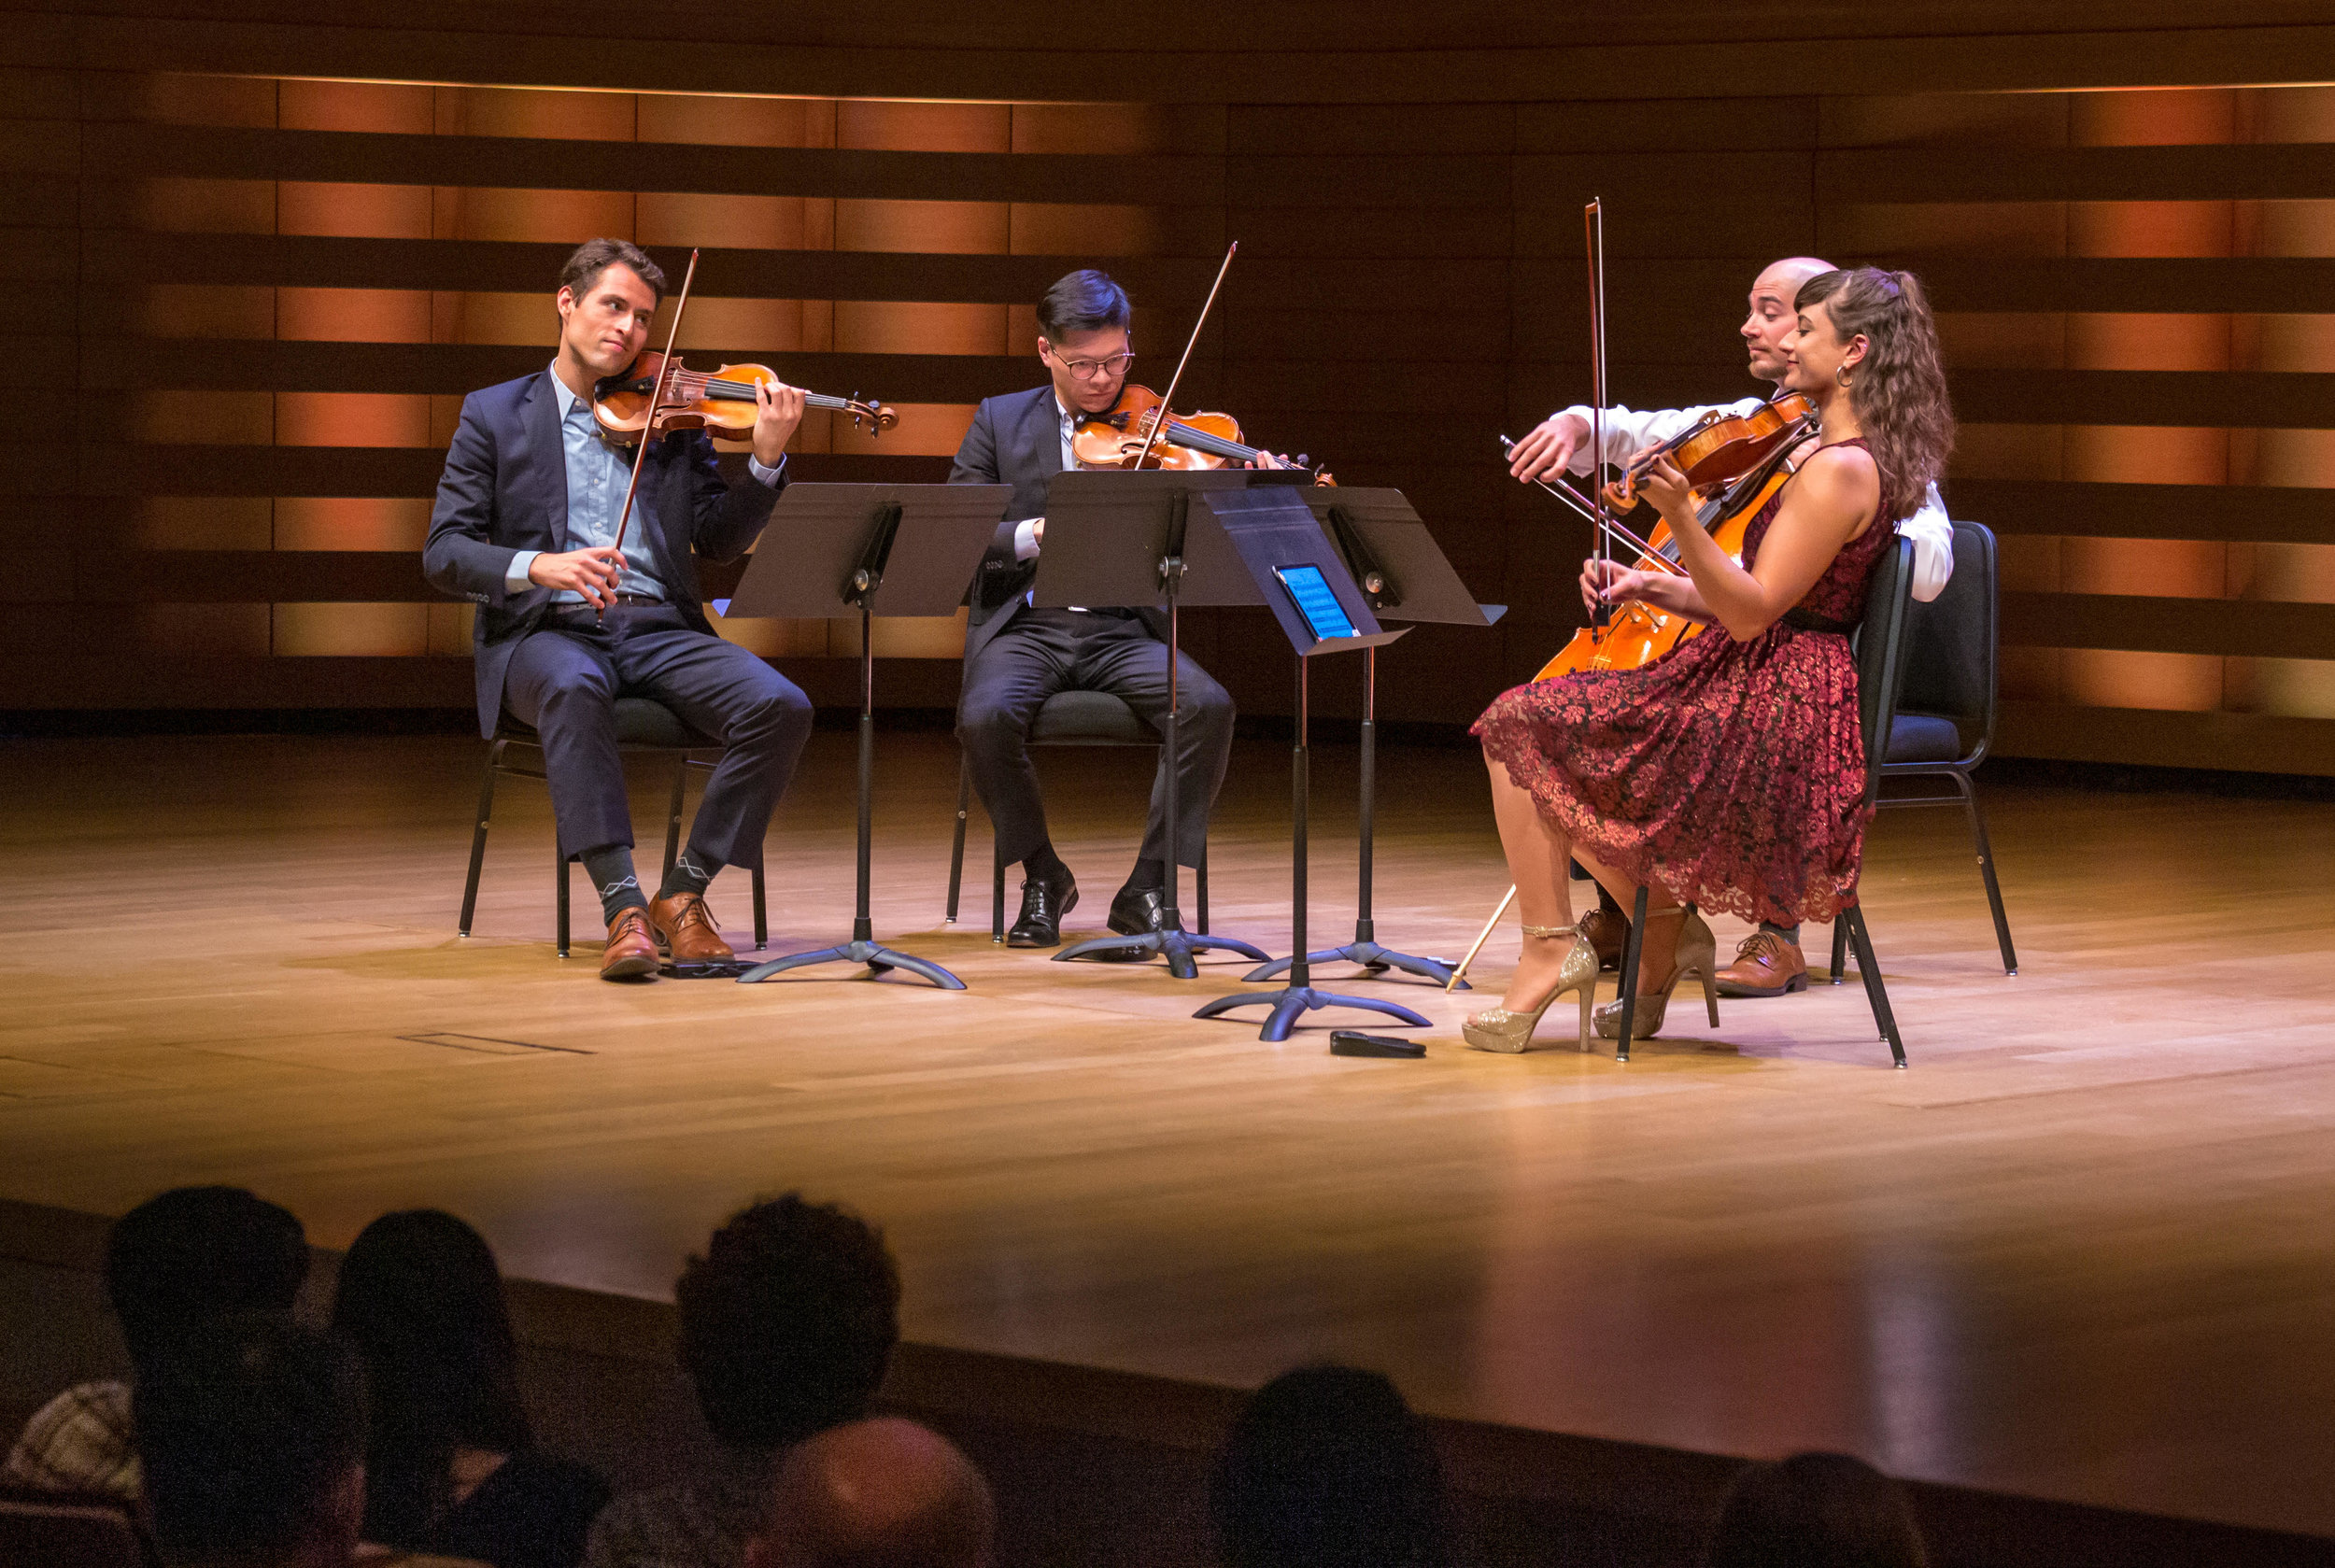 L-R: Joel Link, Brian Lee, Milena Pajaro-van de Stadt and Camden Shaw. Photo credit: Toronto Summer Music